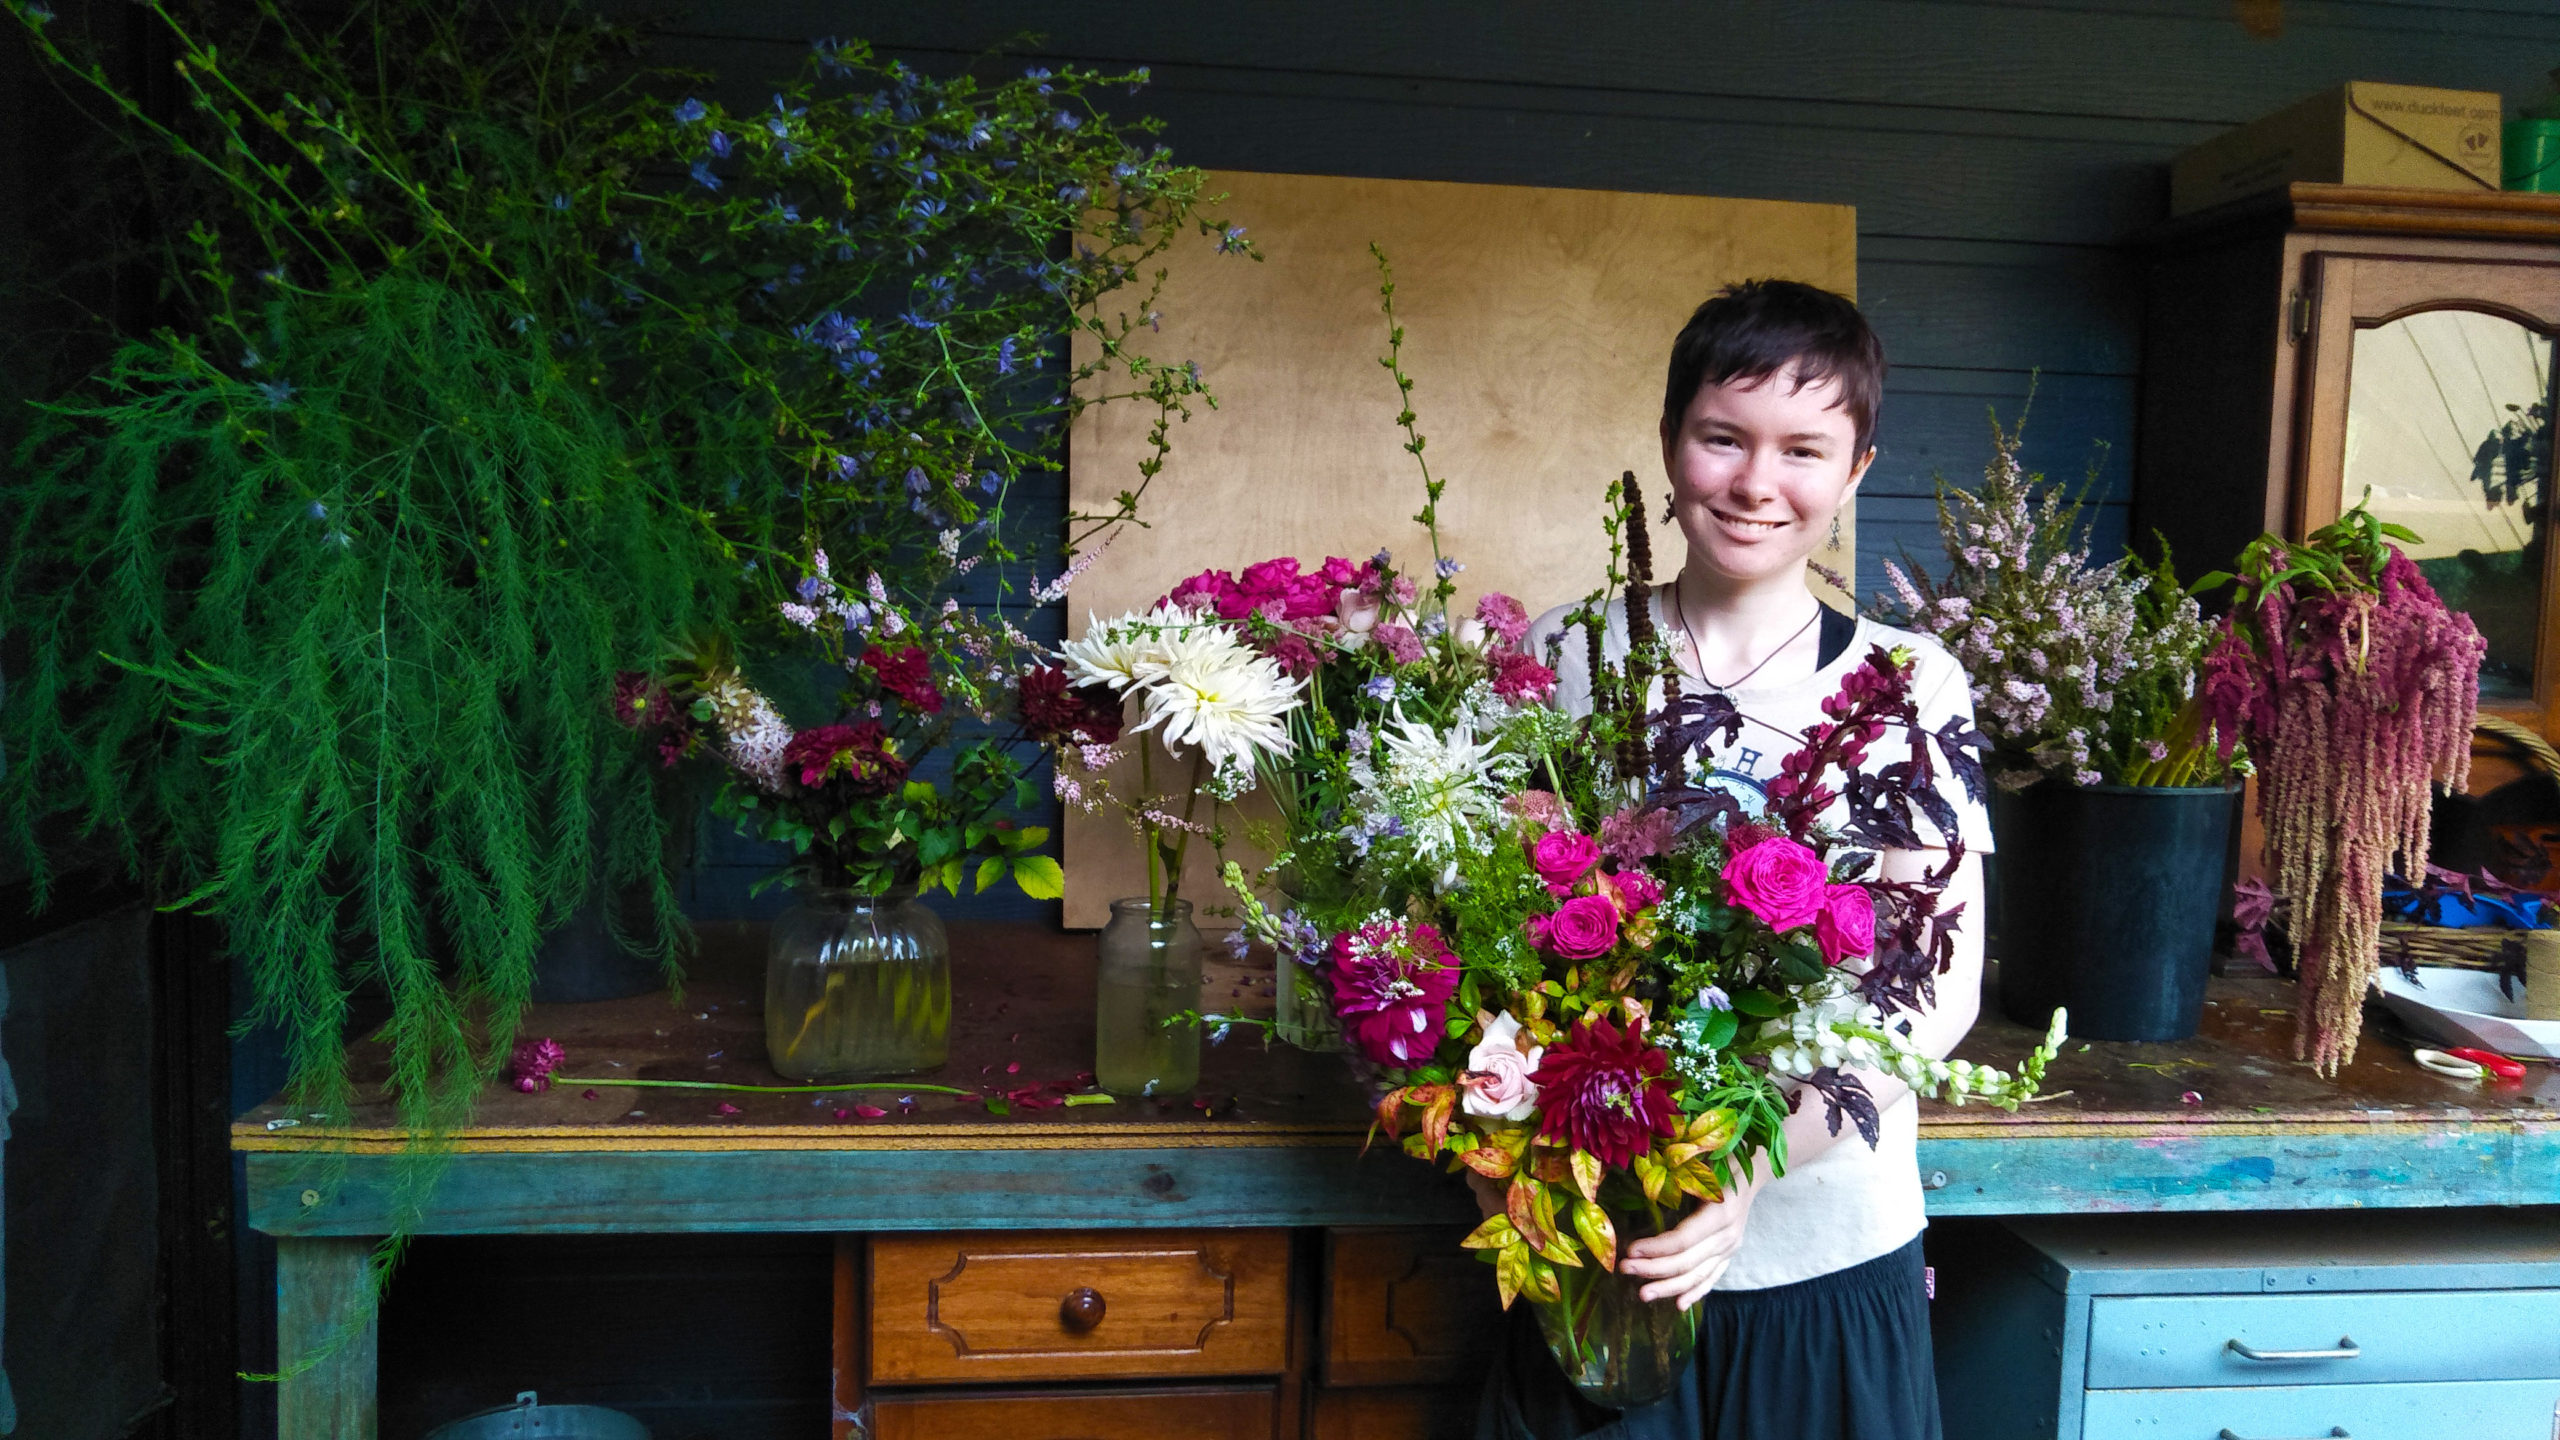 Young women holds a large bunch of flowers in vase. Behind her is a wooden table and drawers with a variety of vases and flowers.